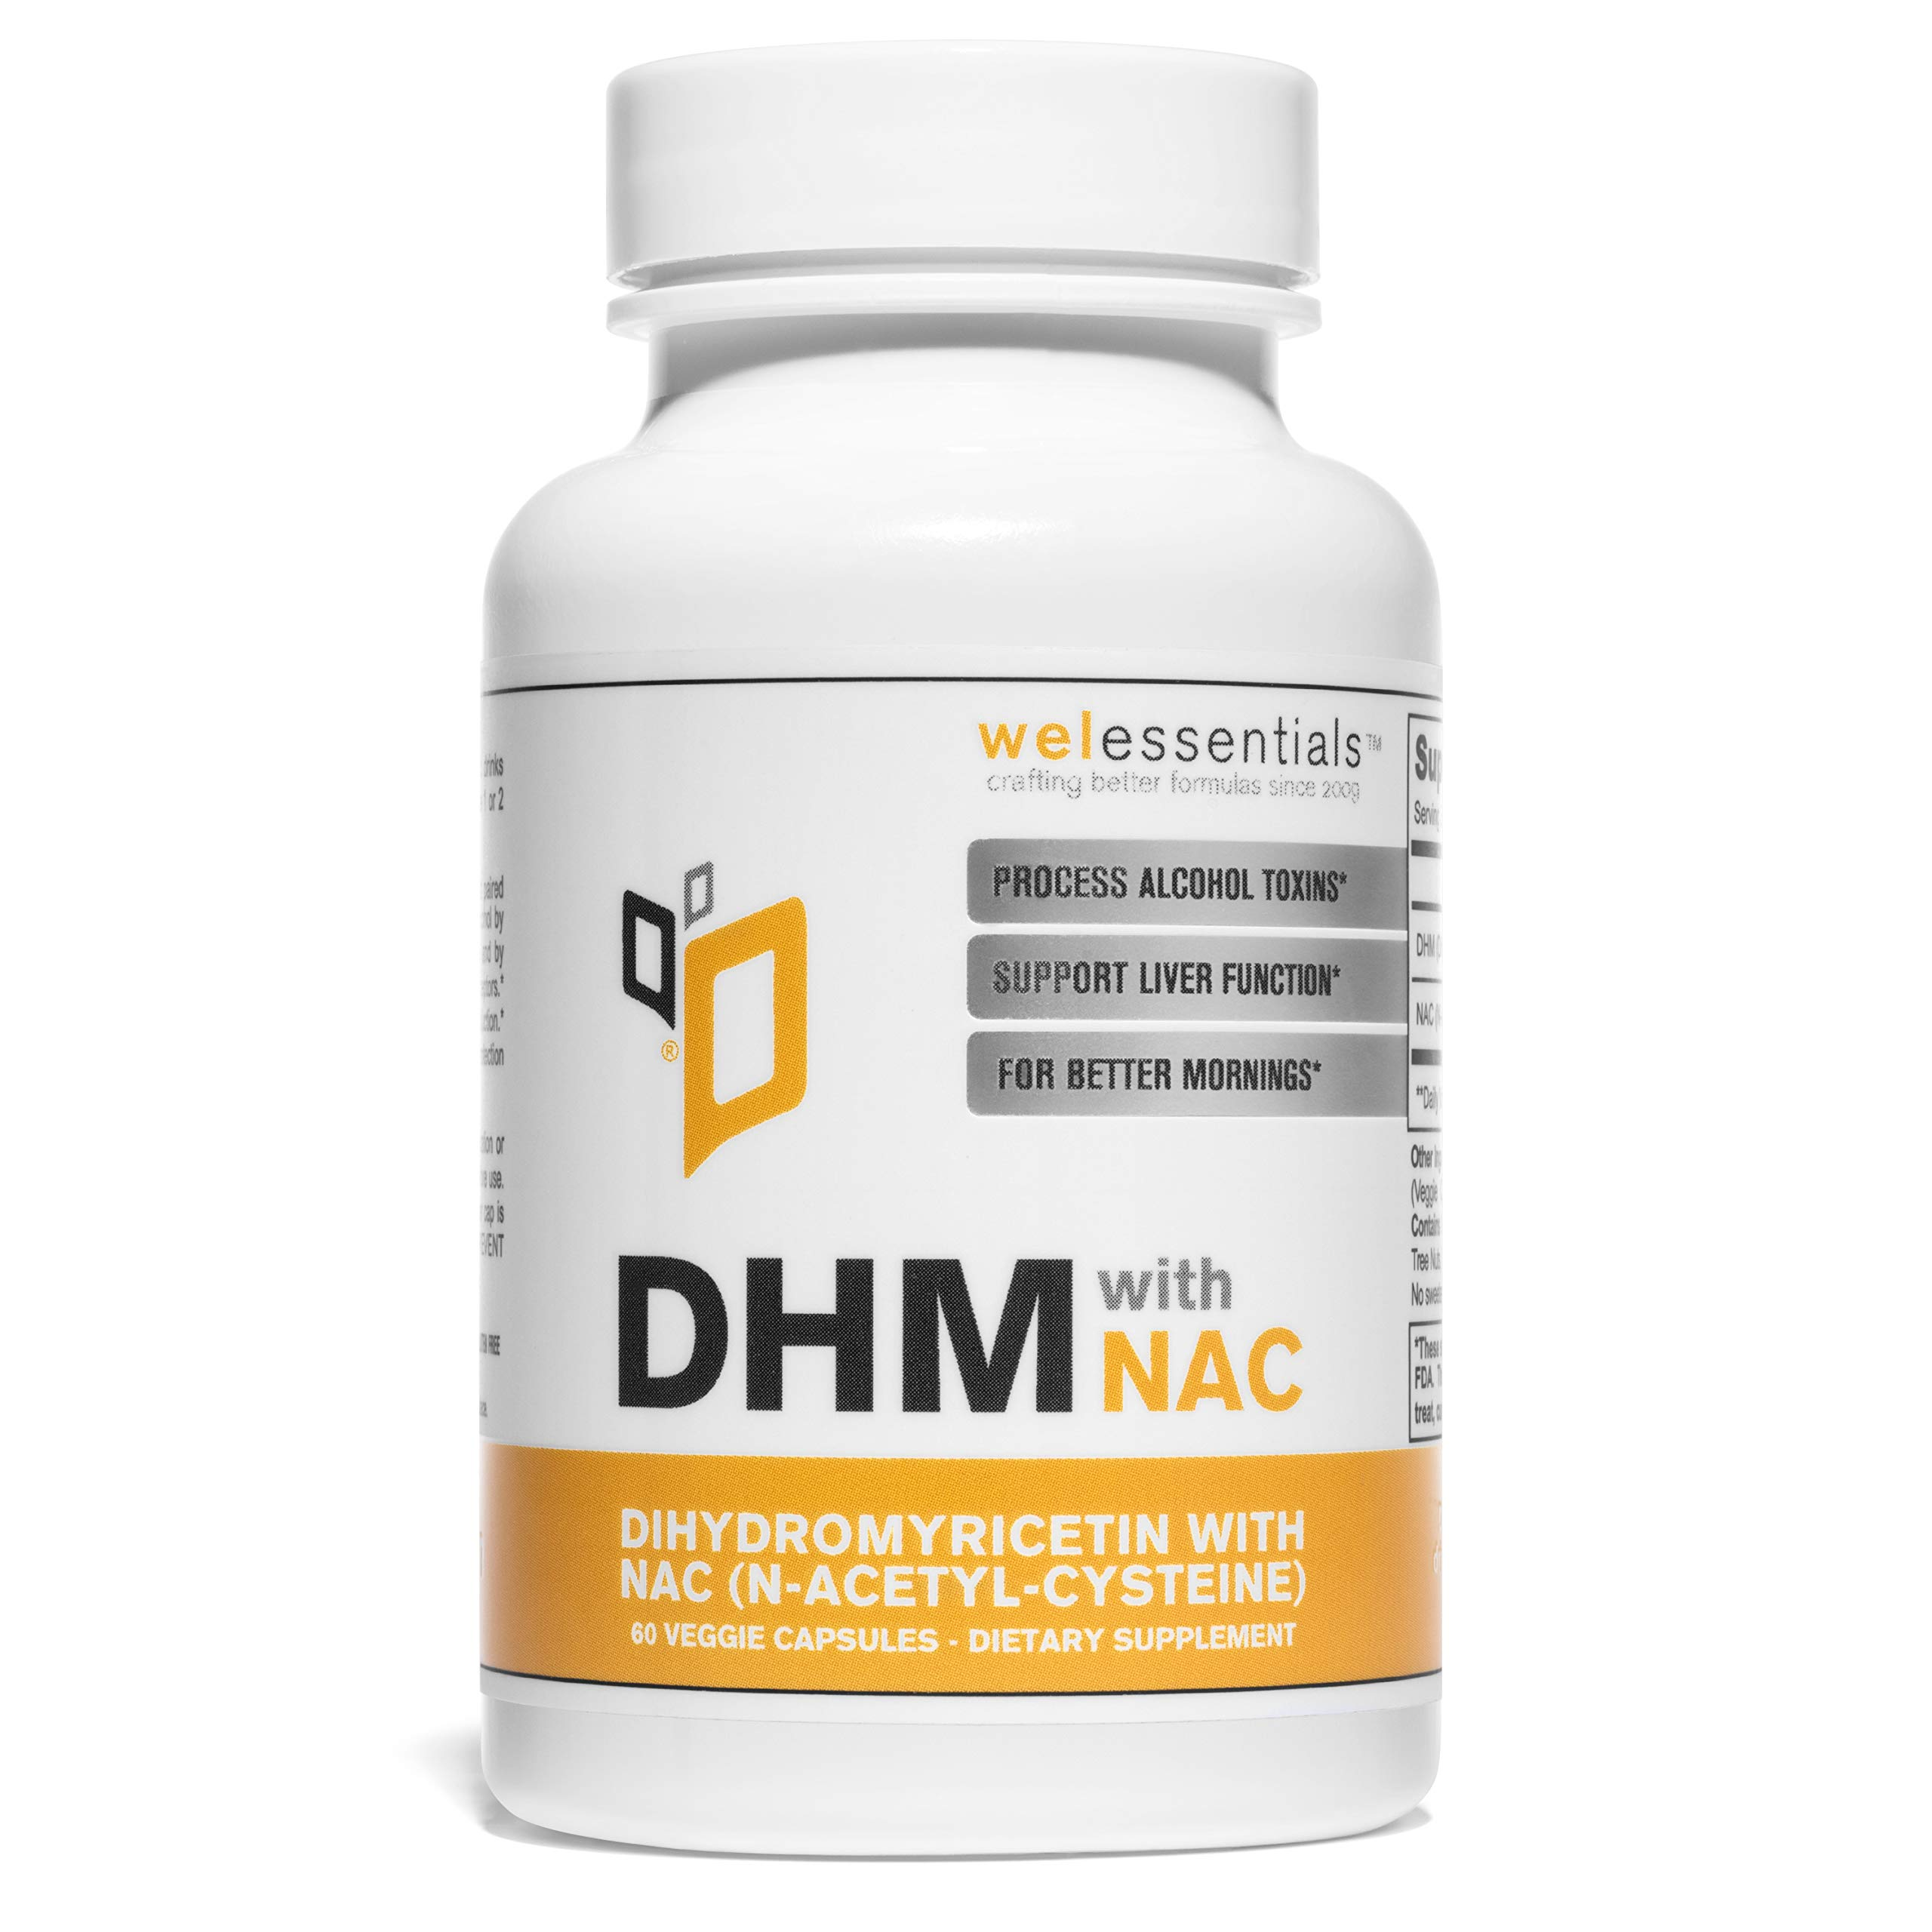 Max Strength DHM Dihydromyricetin with NAC by WEL Essentials (60 Capsule)